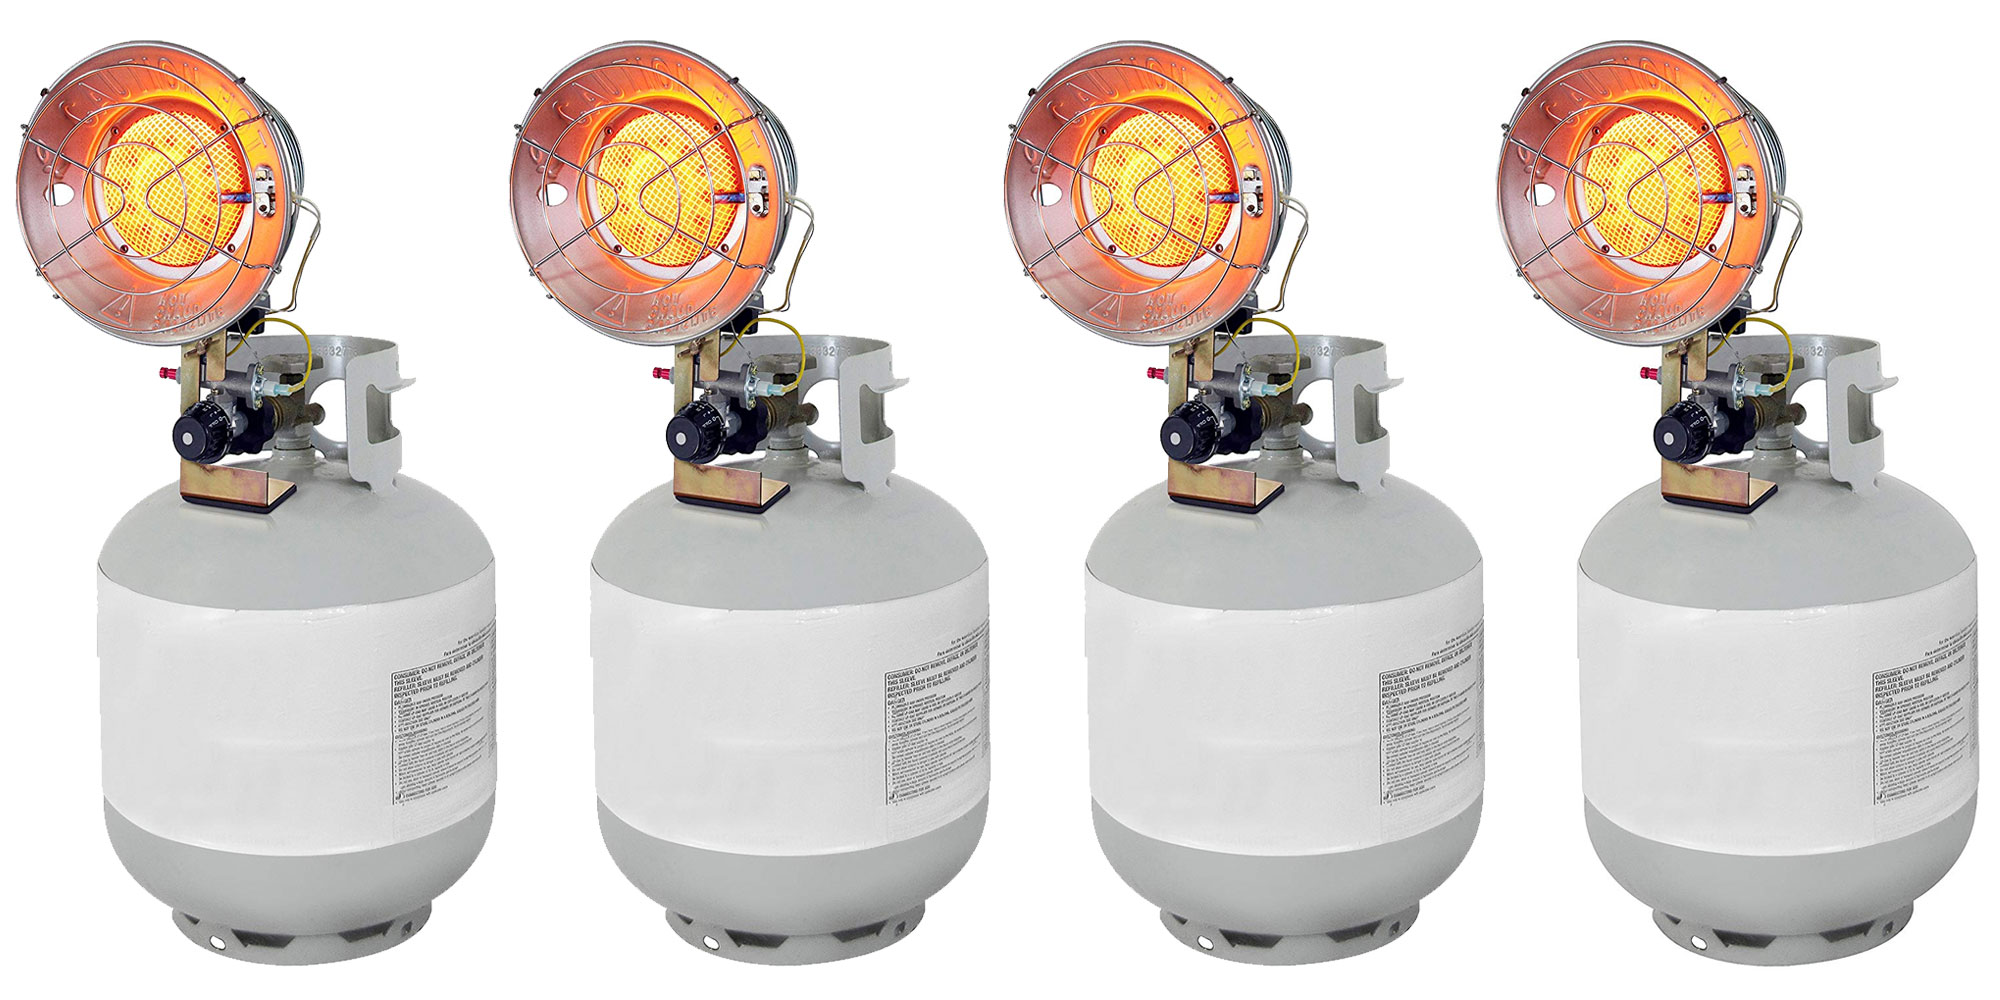 This Dyna-Glo Propane Tank Top Heater is 15,000BTU to keep you warm for $18.50